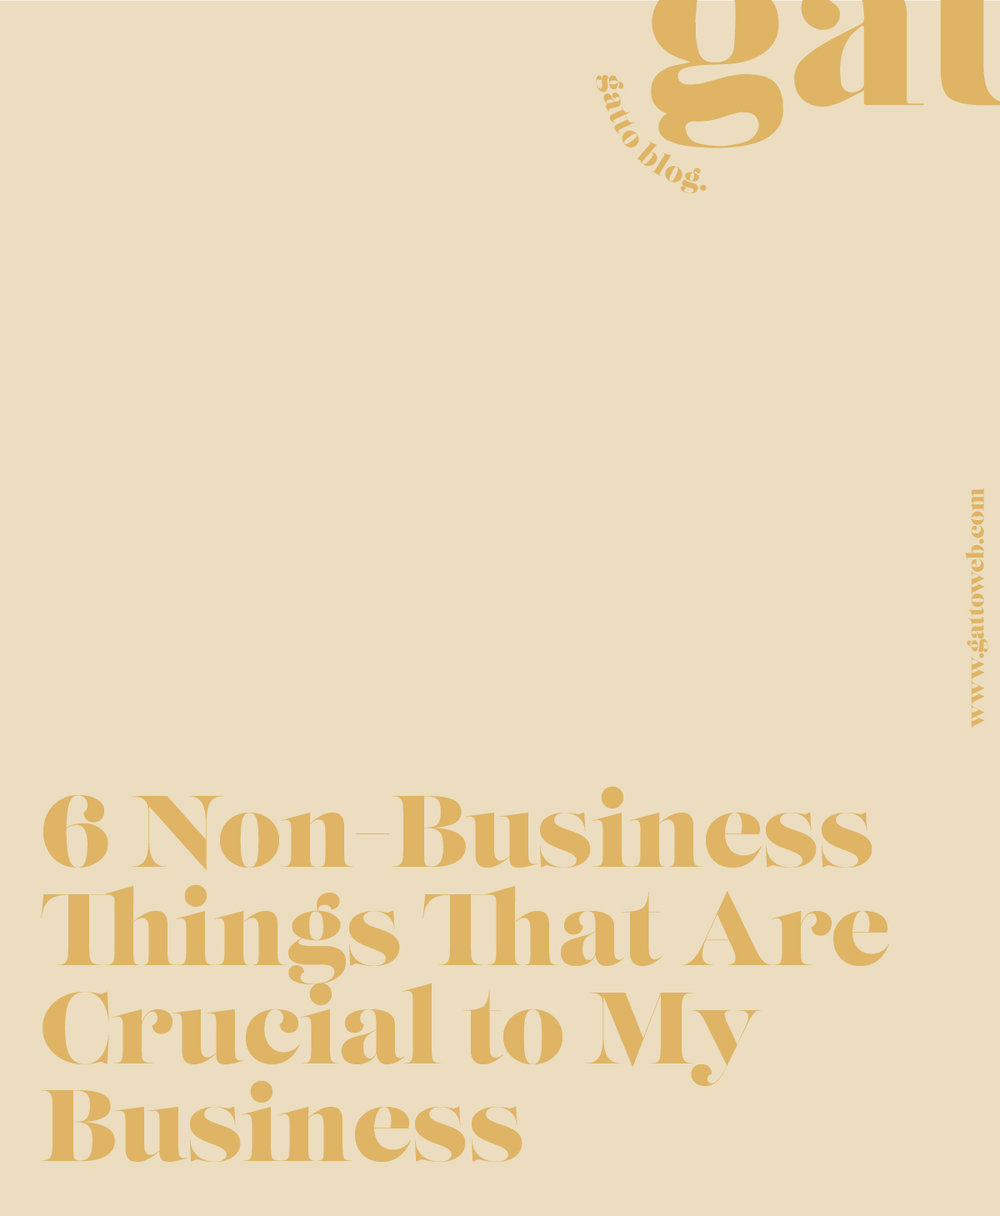 Six Non-Business Things That Are Crucial to My Business.jpg